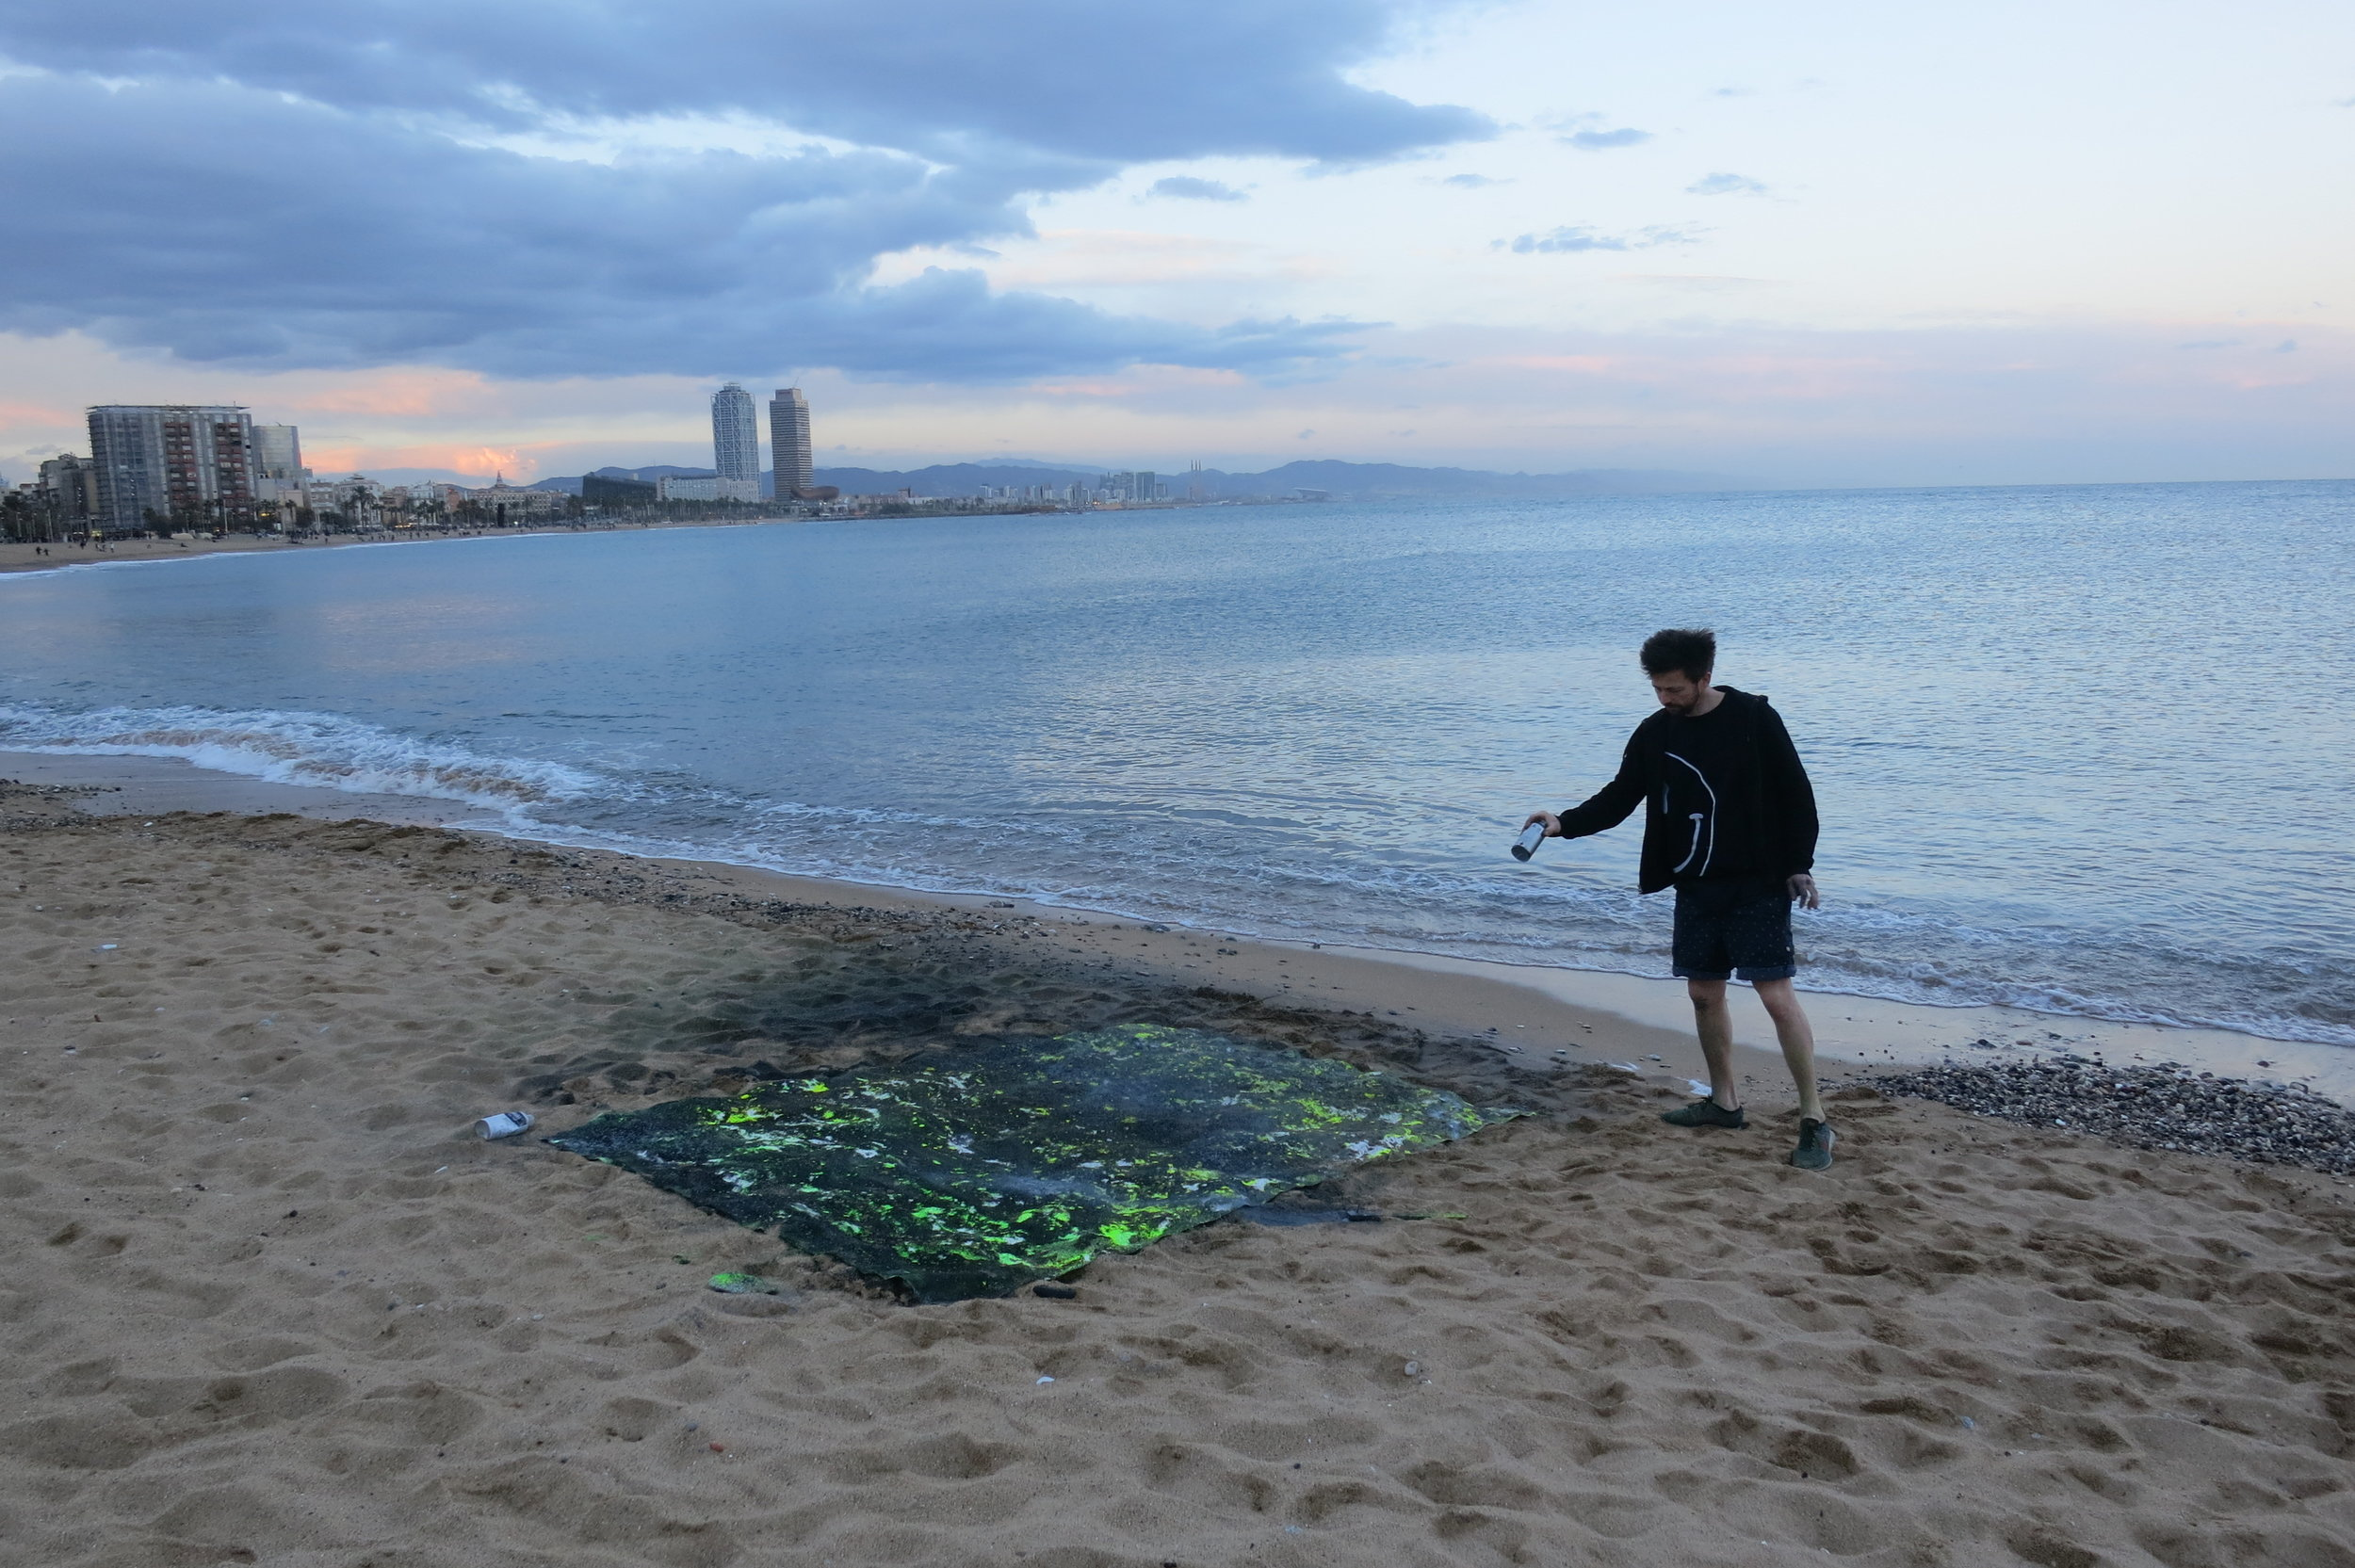 Sand and nail bomb painting for the  Moral Minimalism  solo exhibition.  Playa Barceloneta, Barcelona, Spain 2018.